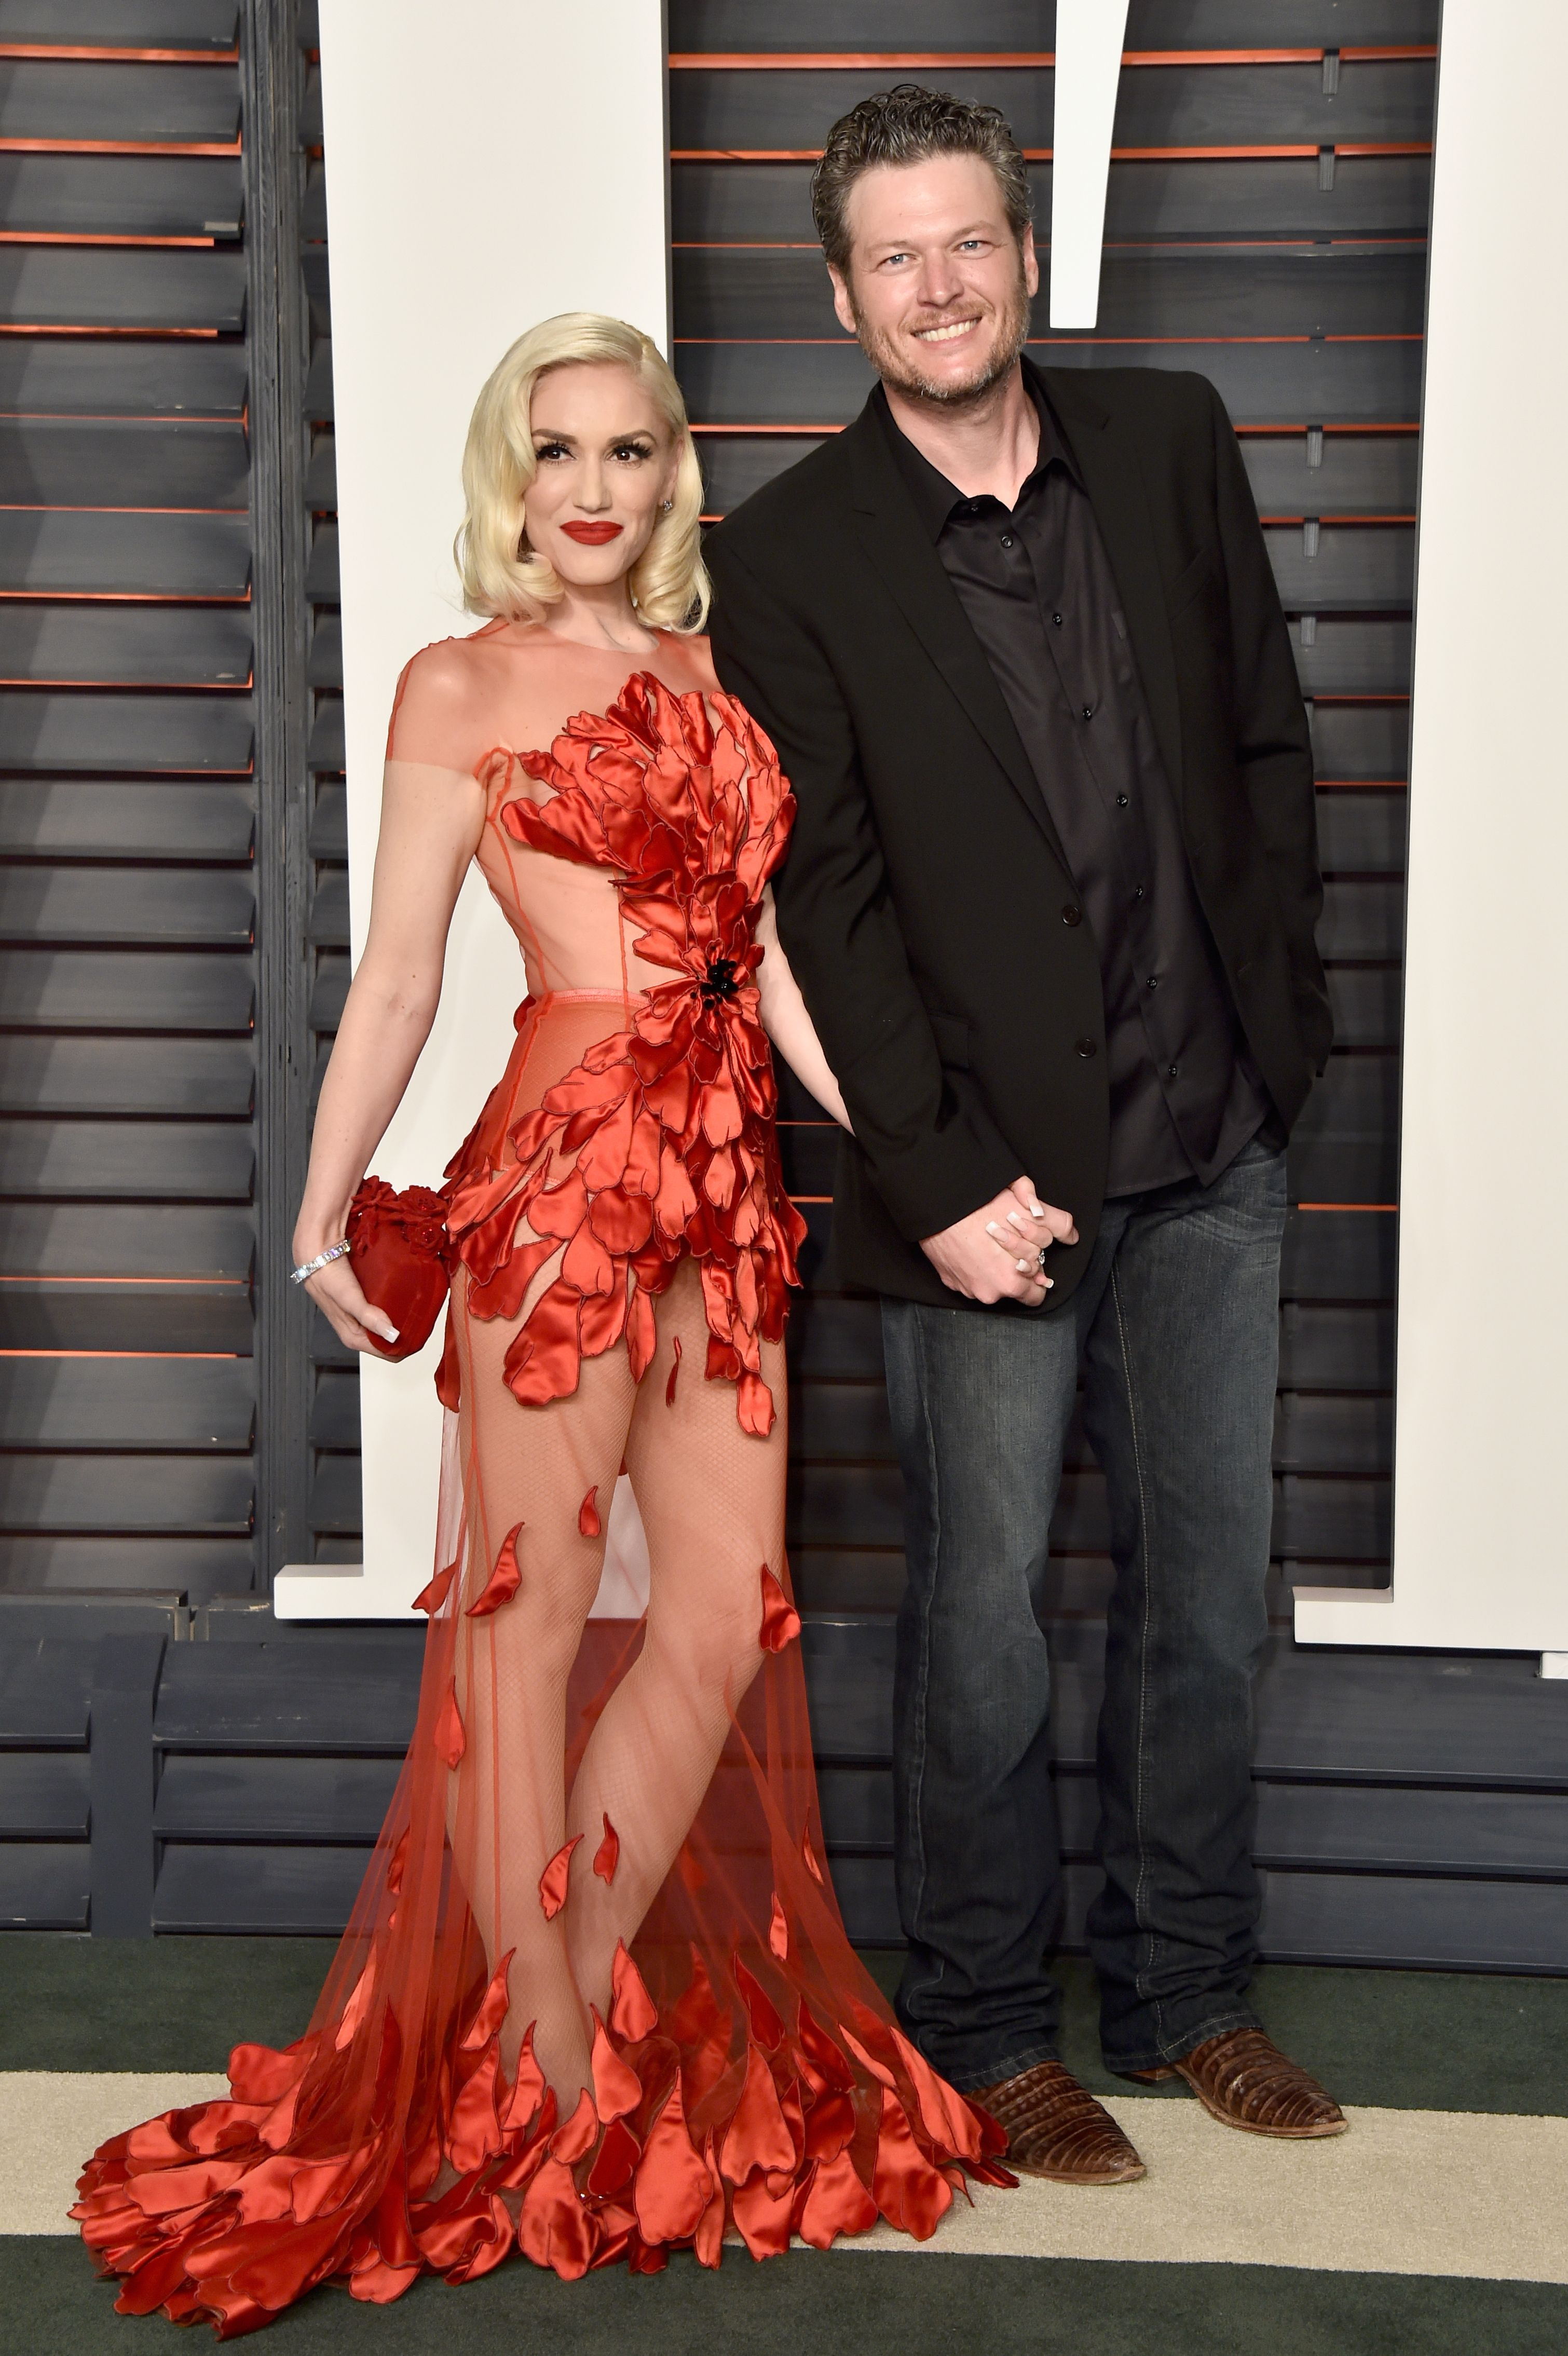 Gwen Stefani and Blake Shelton at the 2016 Vanity Fair Oscar Party in Beverly Hills, California | Source: Getty Images